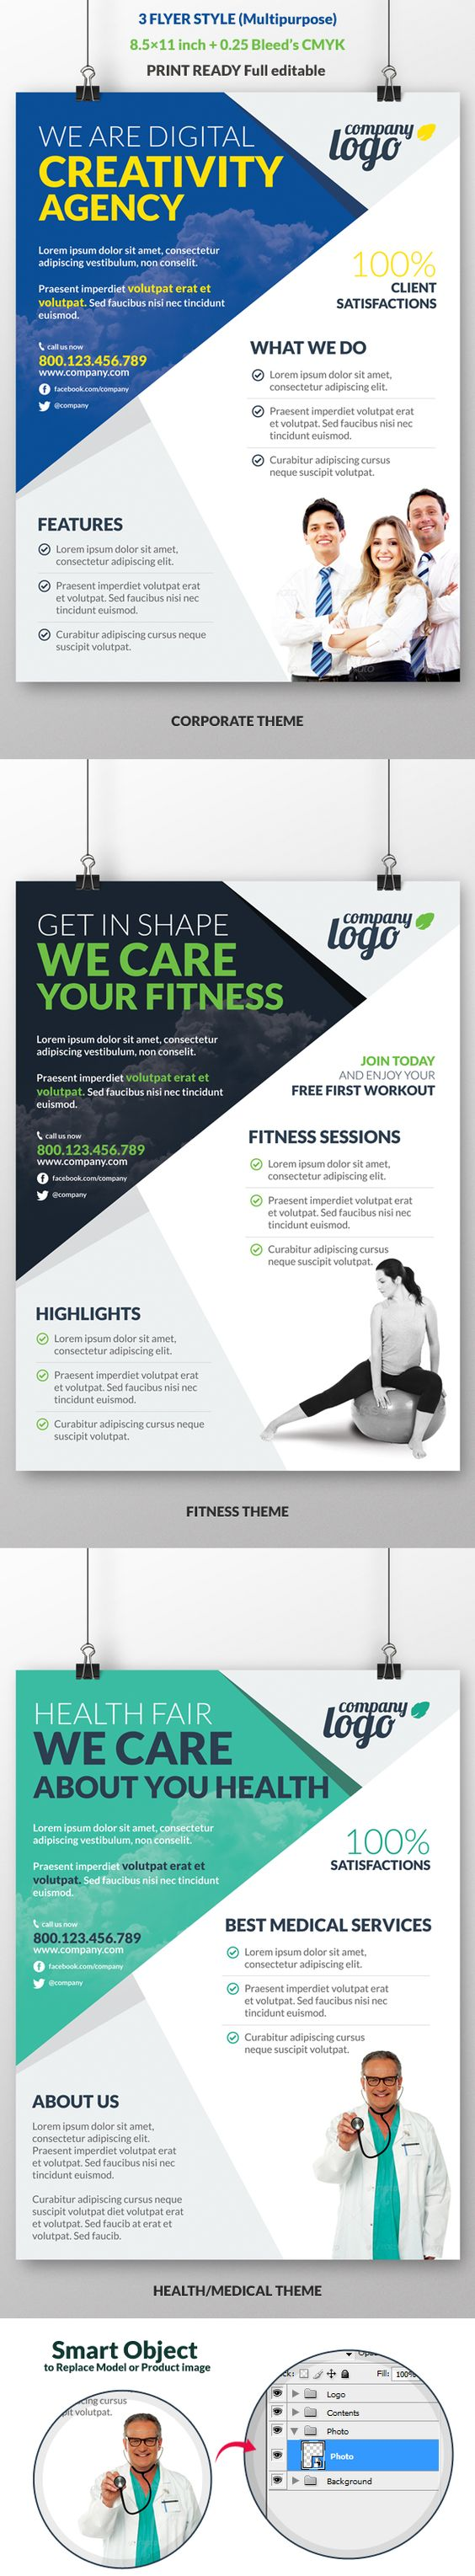 health promotion plan template - pinterest the world s catalog of ideas